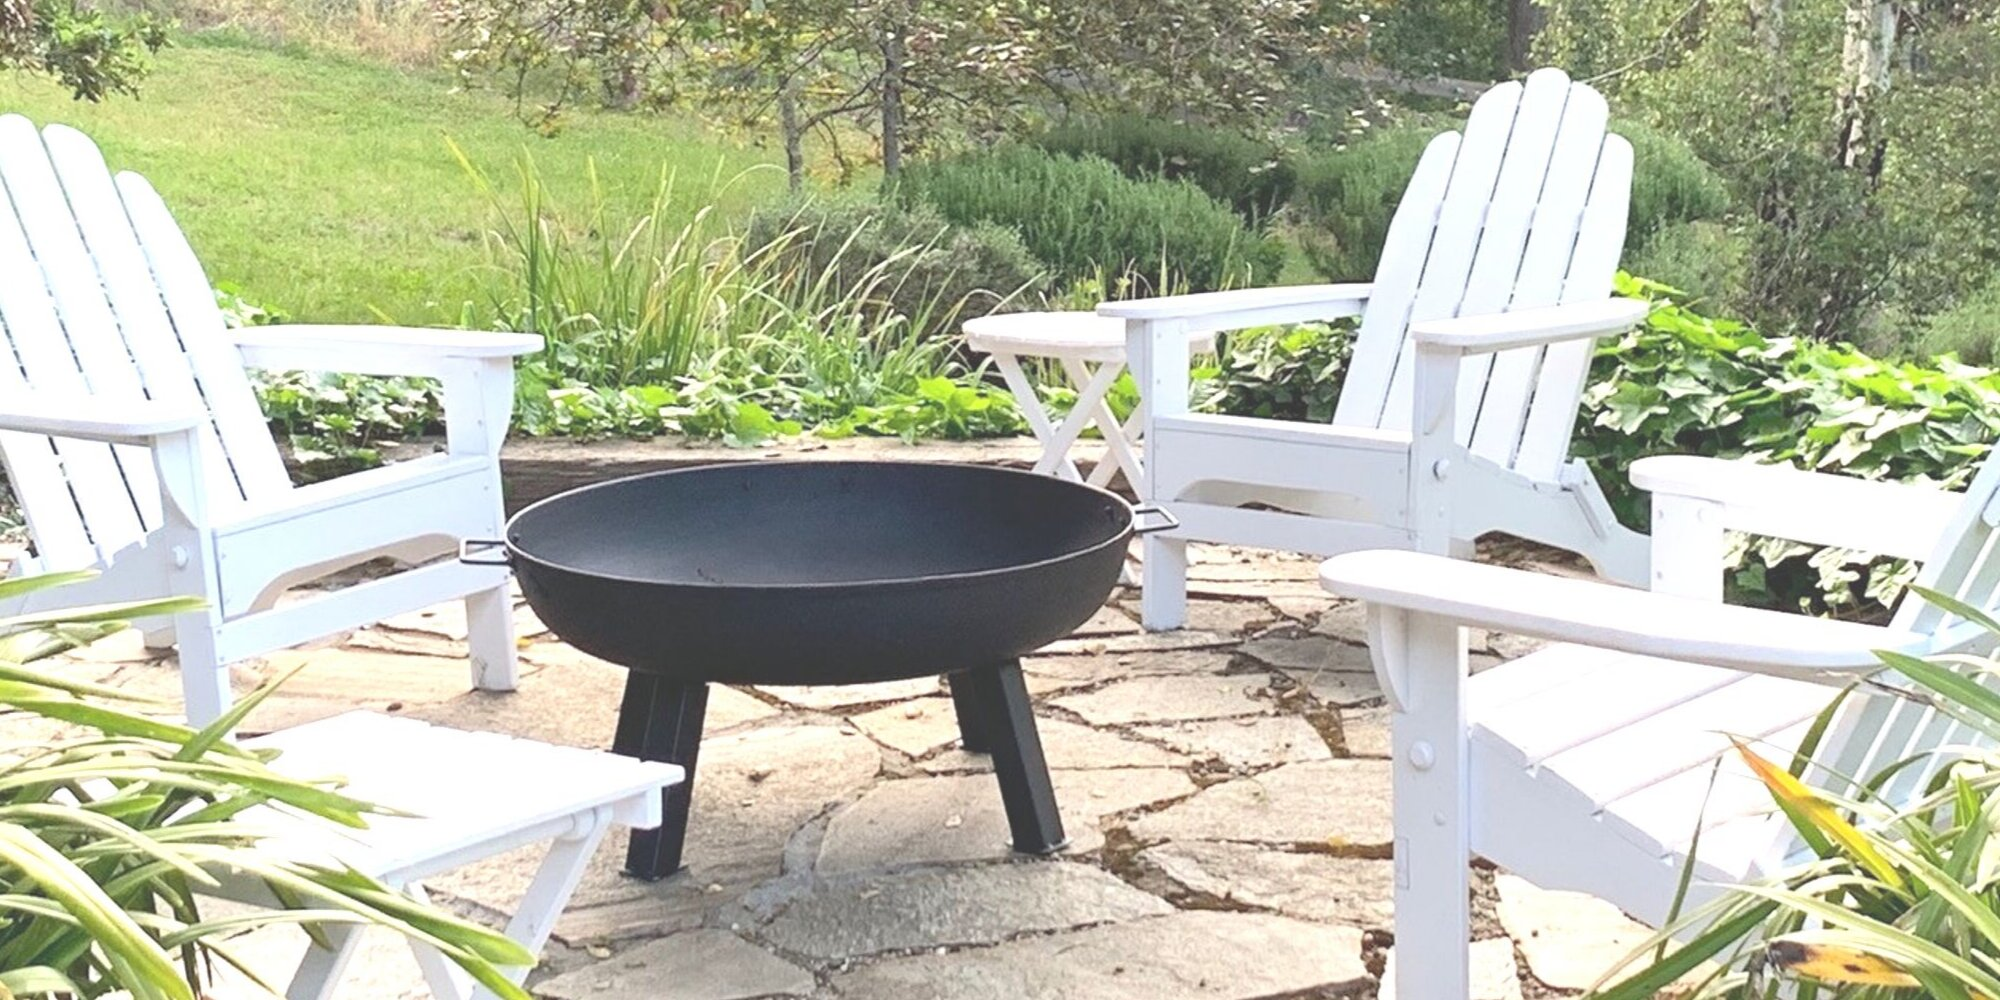 Outdoor Fireplace Rustic Cast Iron Bowl Portable w Cover Wood Burning Fire Pit